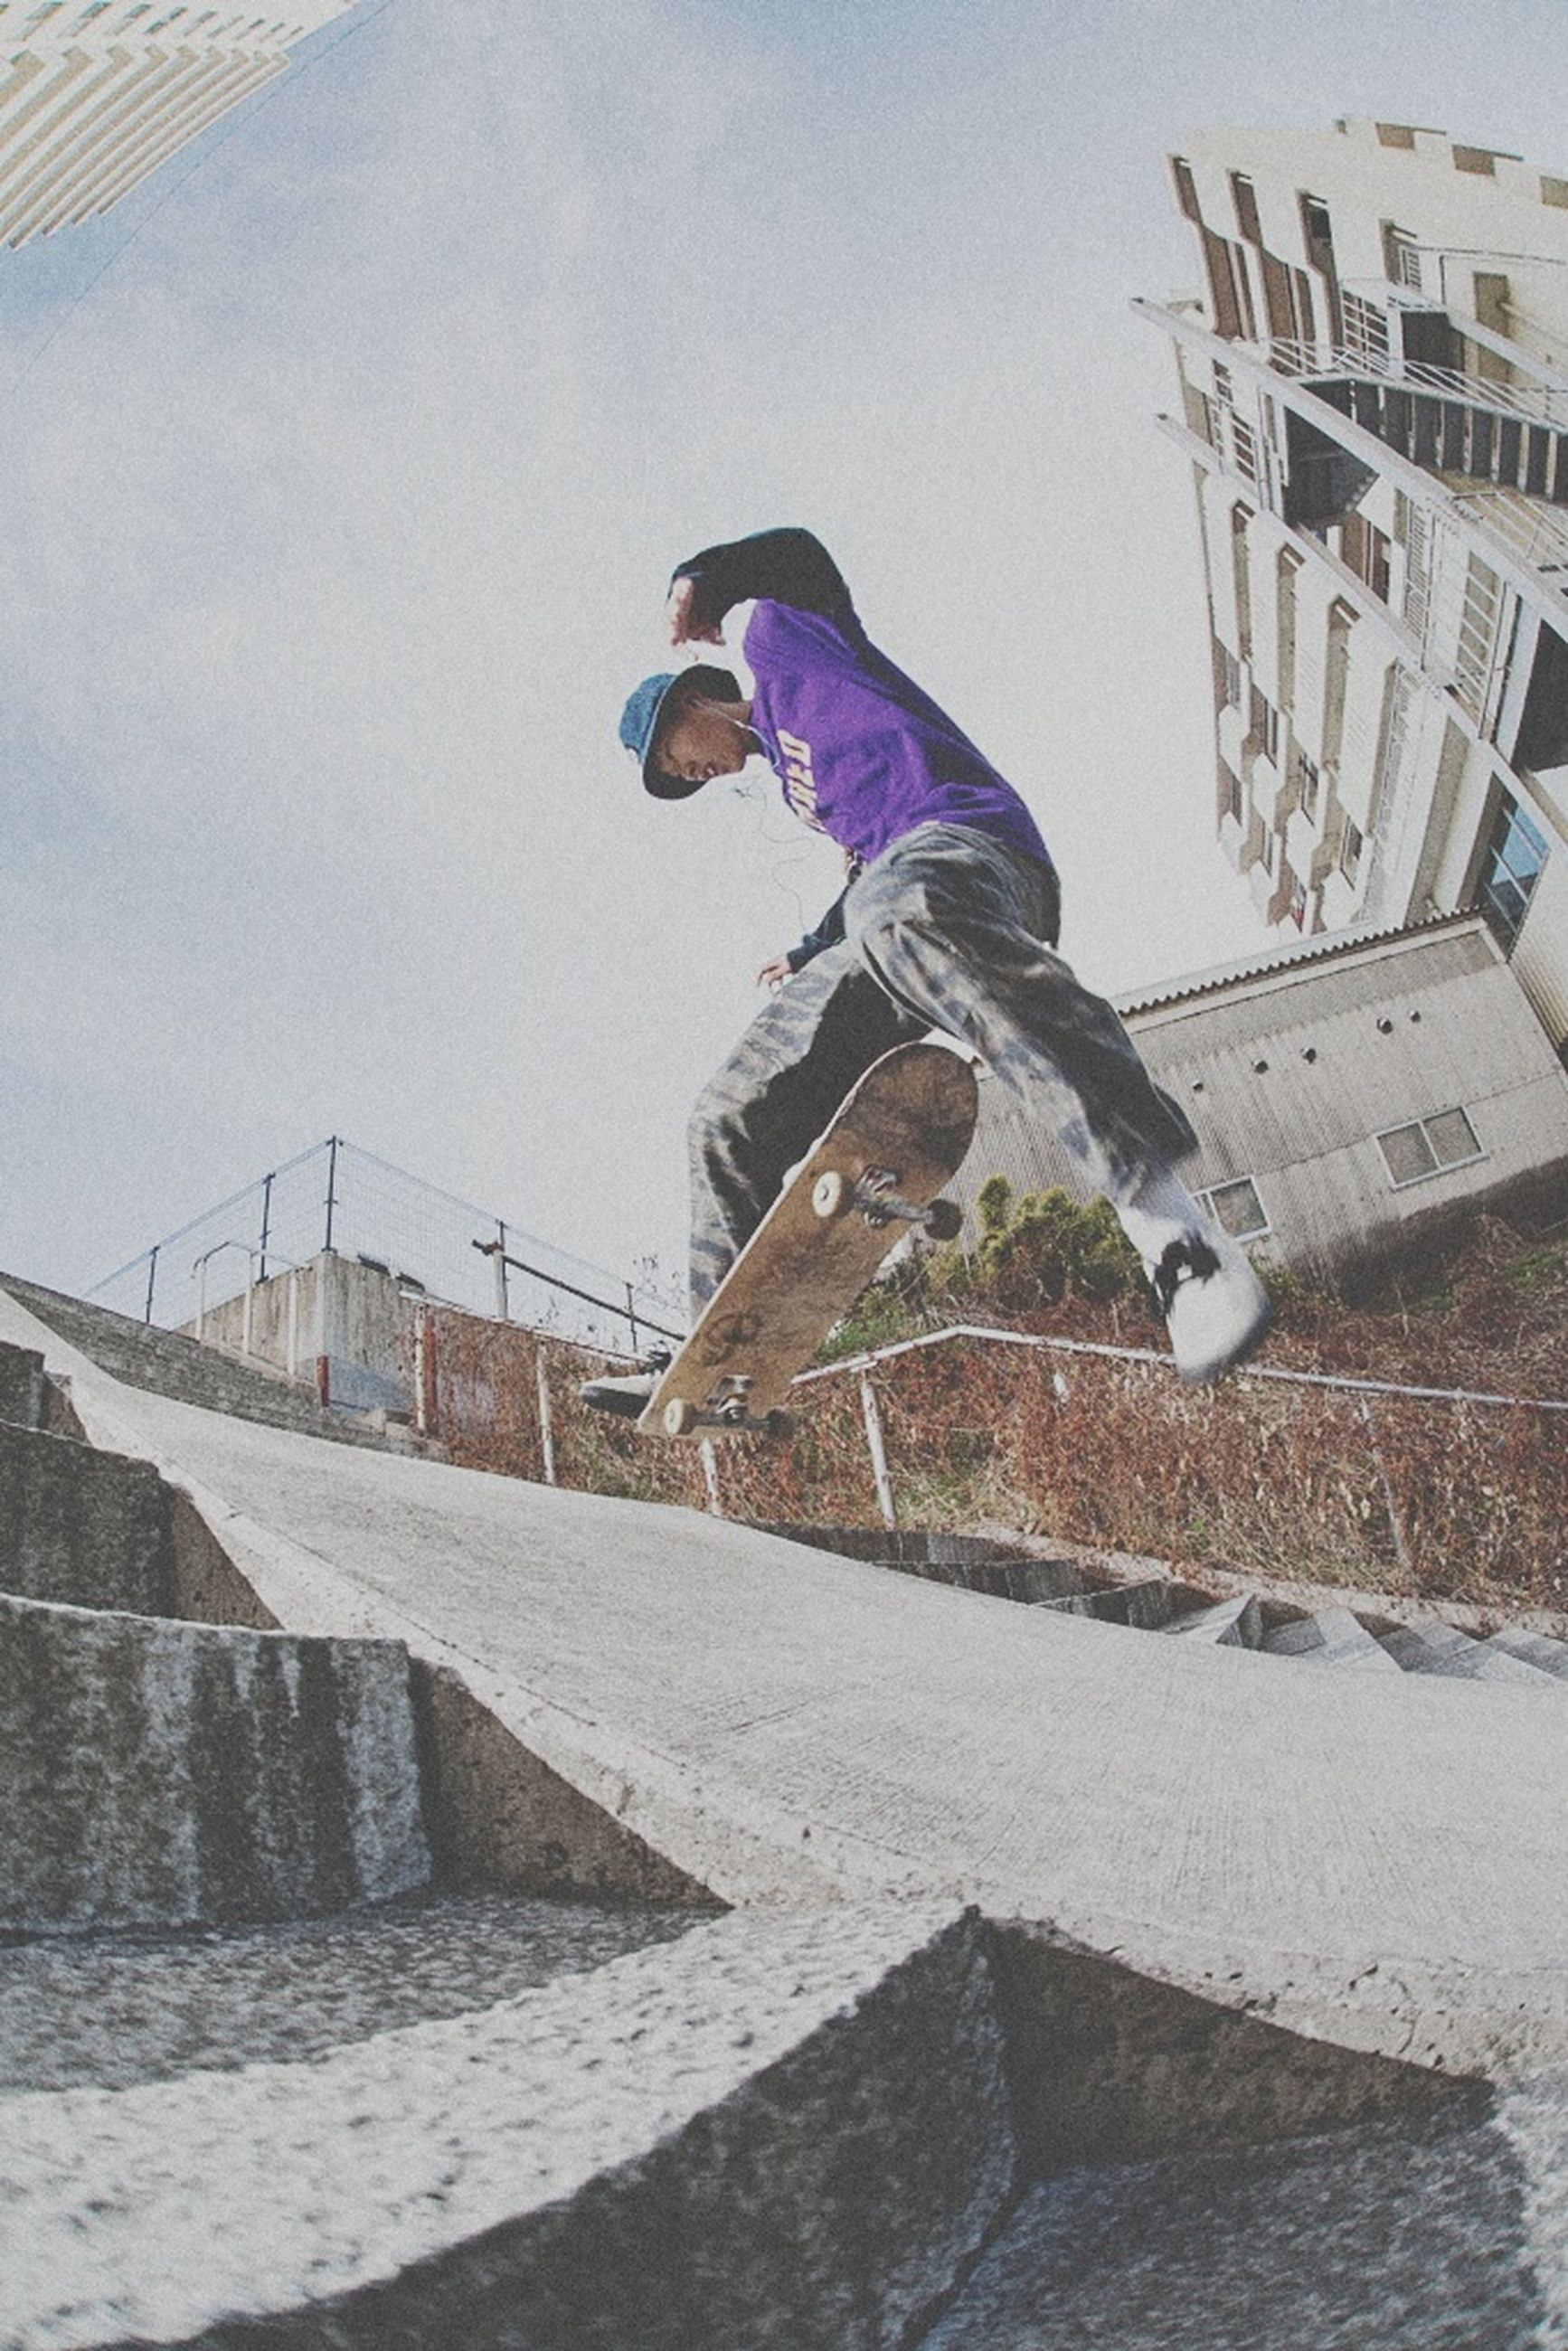 leisure activity, mid-air, full length, real people, lifestyles, jumping, one person, skateboard, skill, motion, sport, stunt, extreme sports, casual clothing, sports ramp, activity, fun, skateboard park, architecture, vitality, outdoors, built structure, young adult, balance, energetic, risk, building exterior, enjoyment, day, men, youth culture, city, sky, people, adult